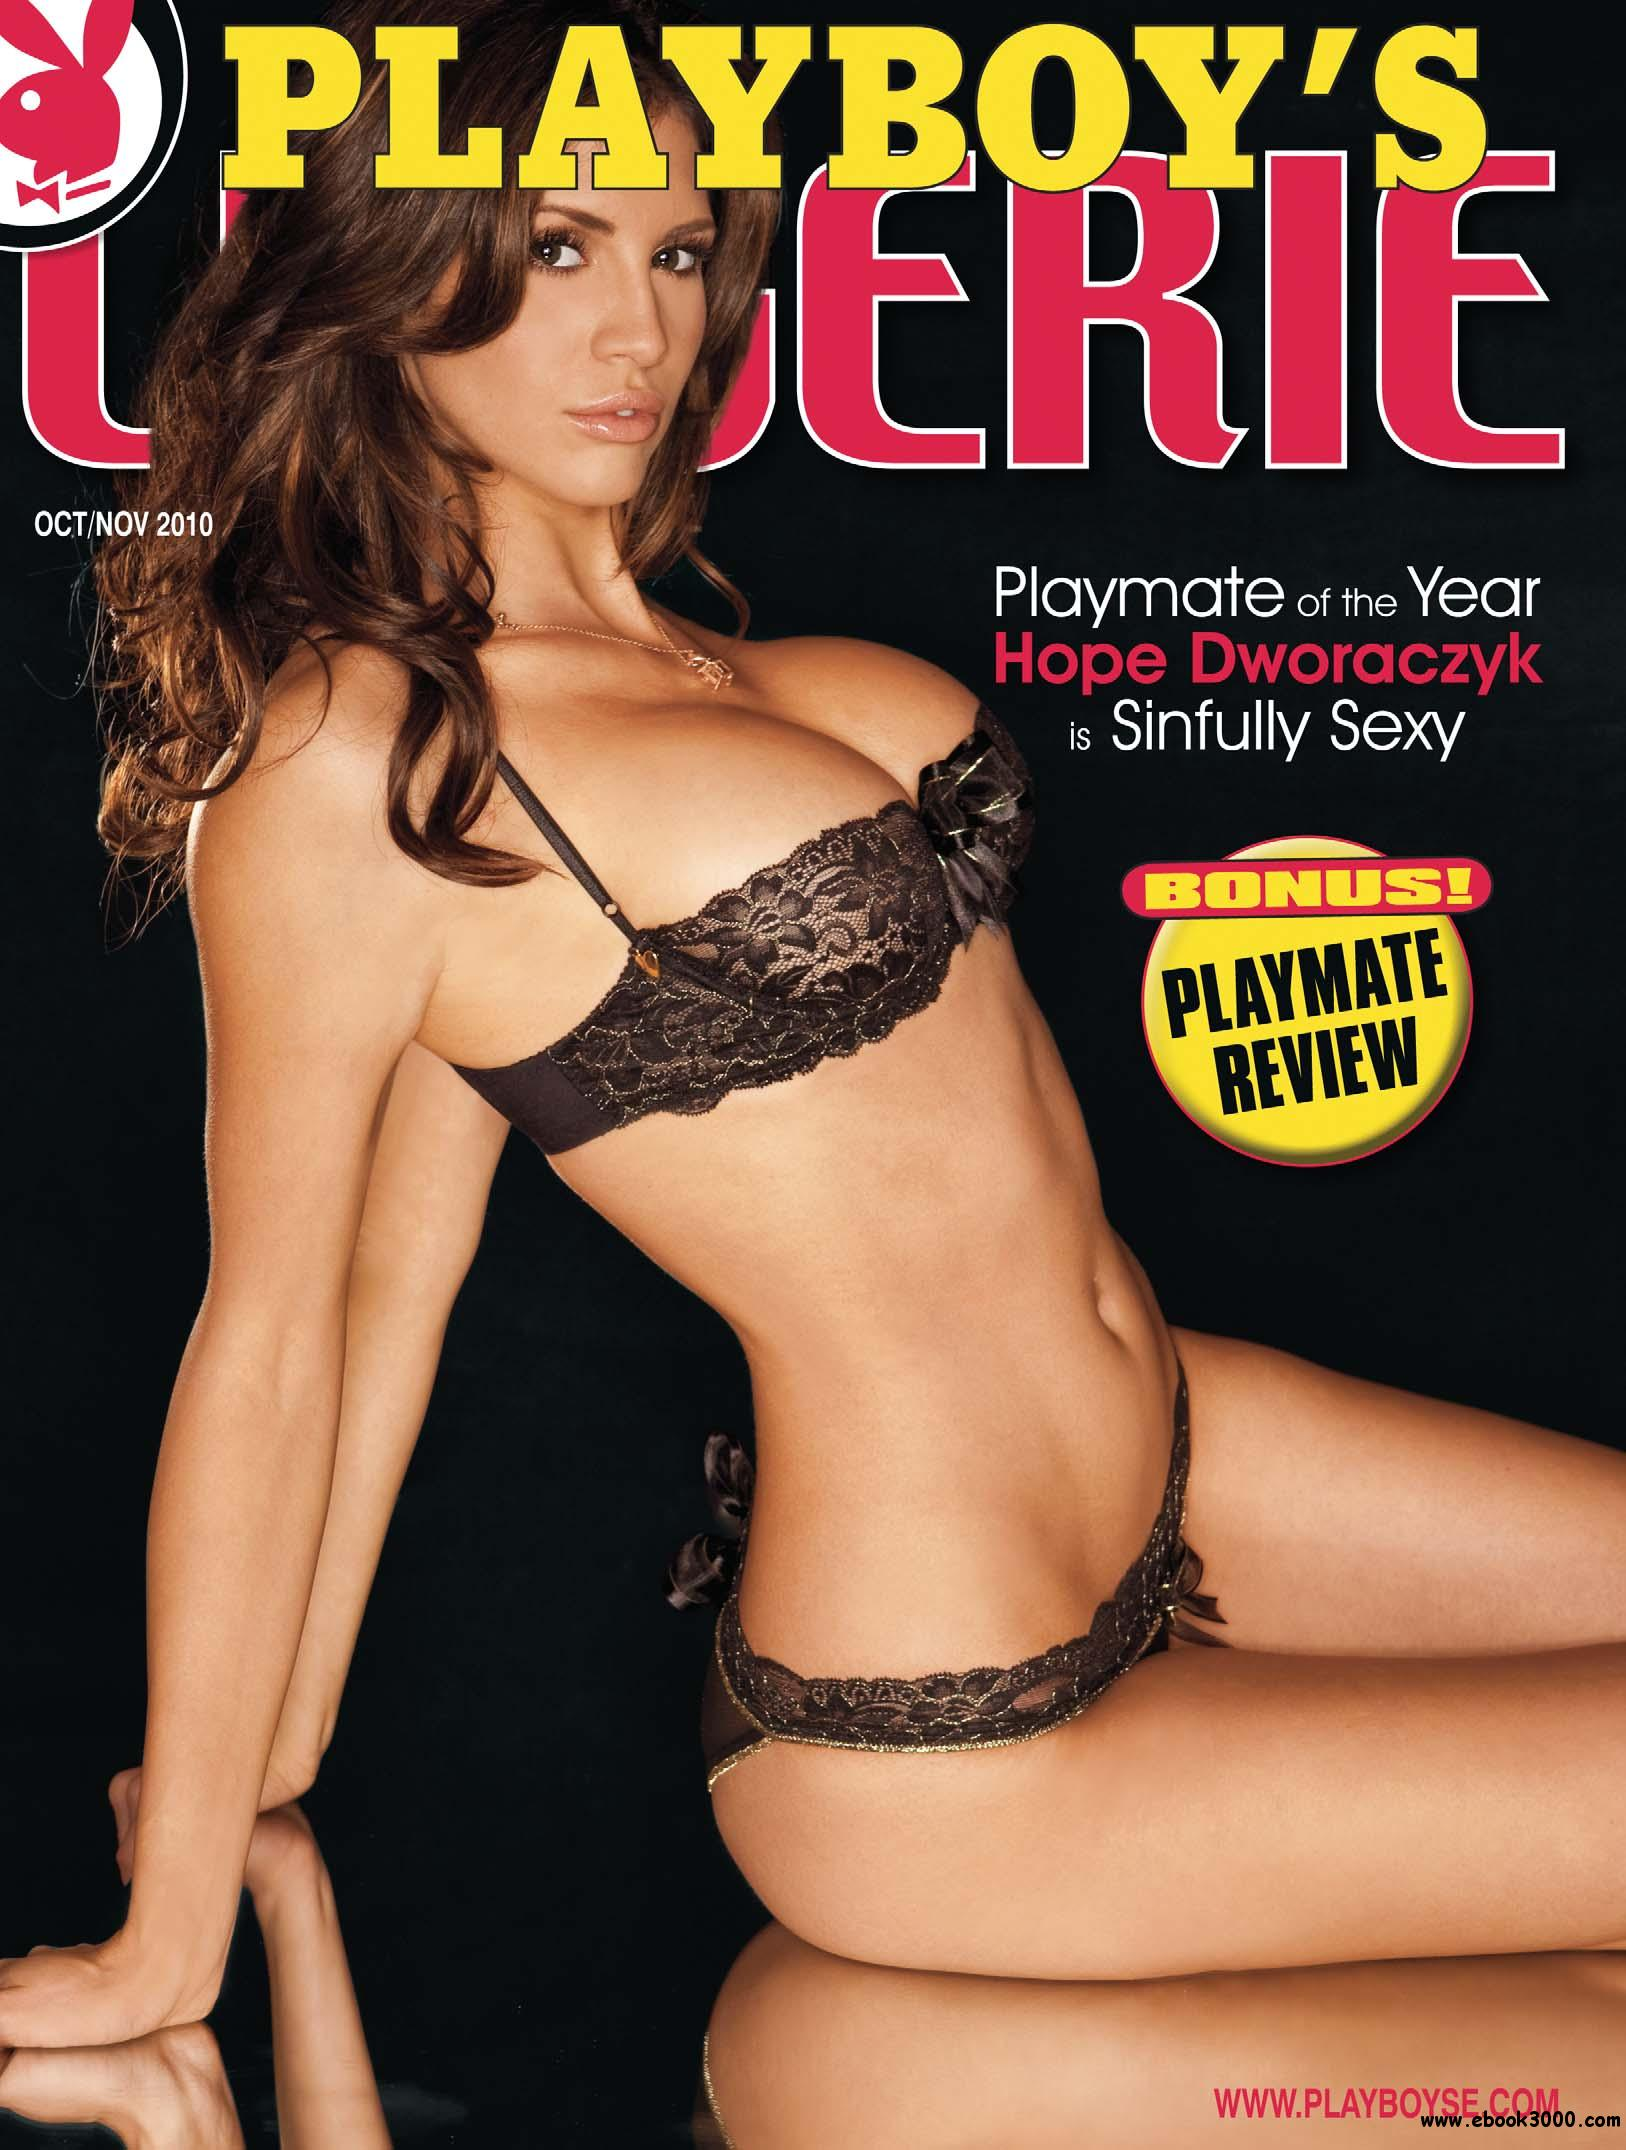 Playboy's Lingerie - October/November 2010 download dree